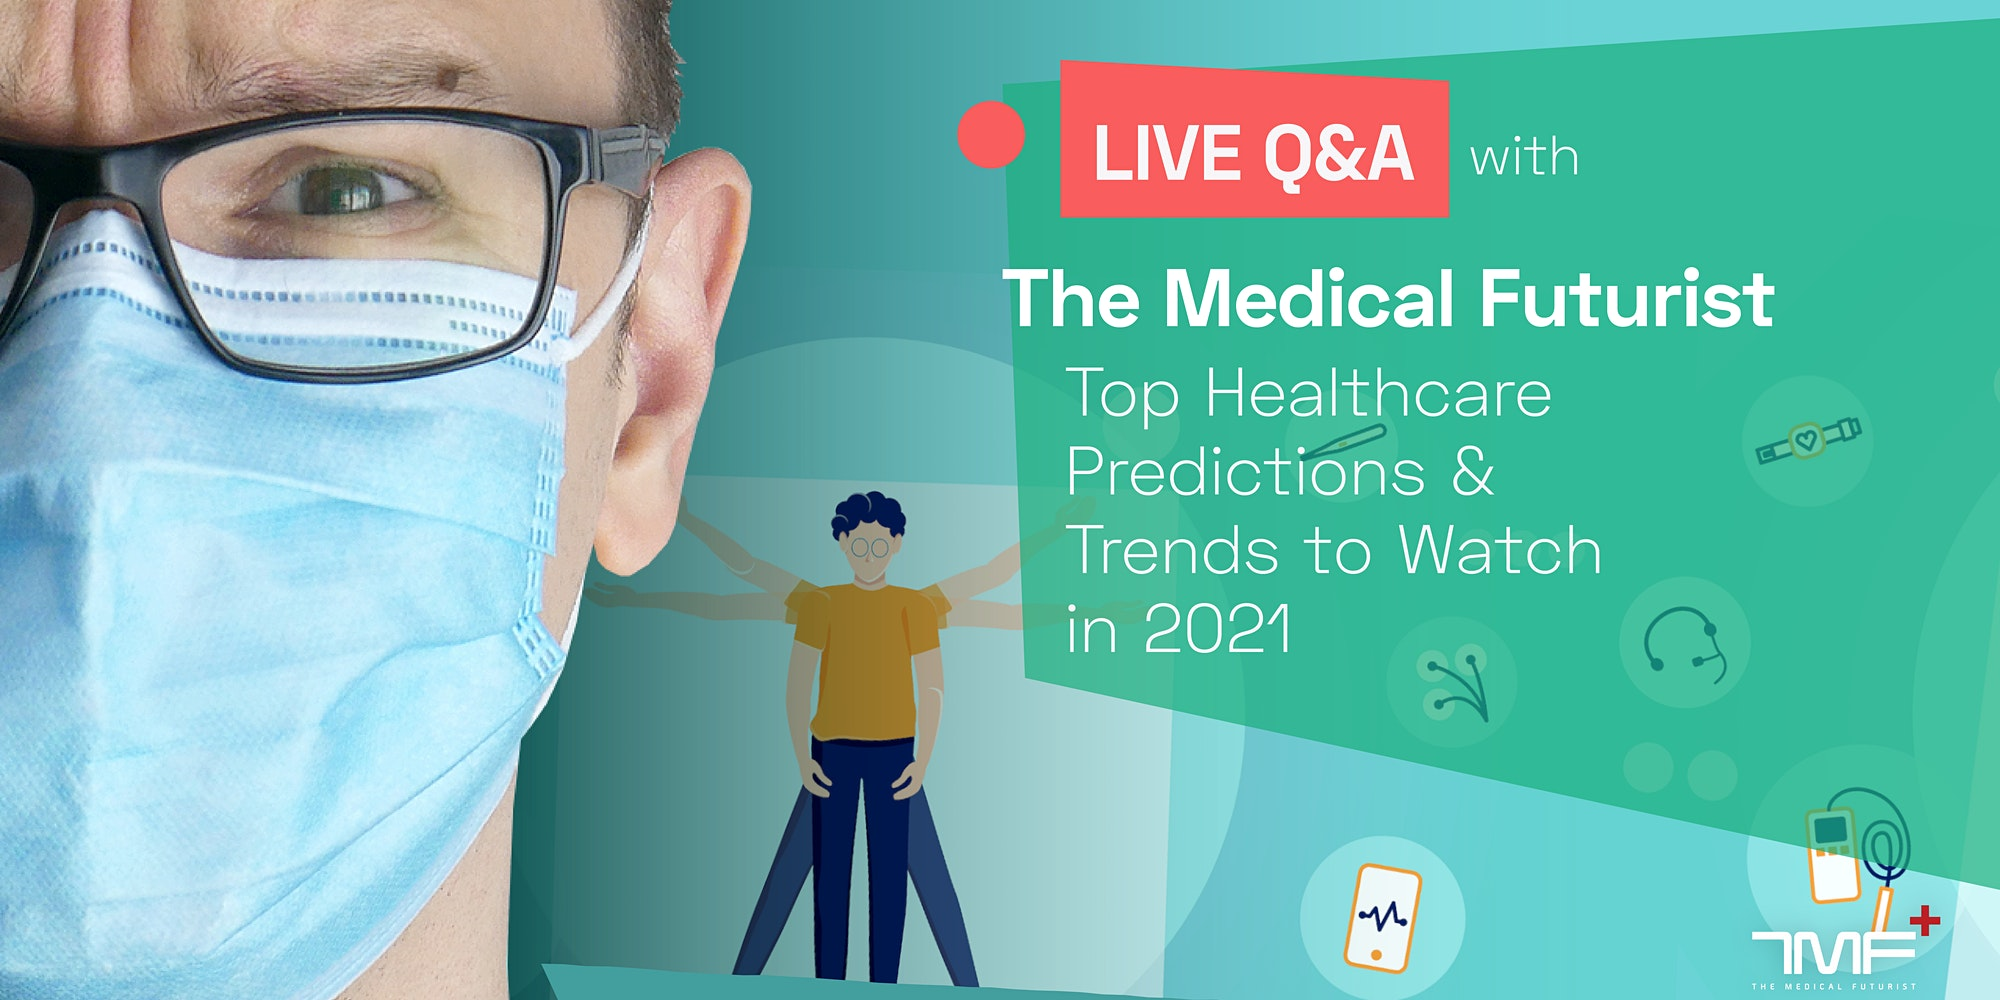 Top Healthcare Predictions & Trends to Watch in 2021 - The Medical Futurist